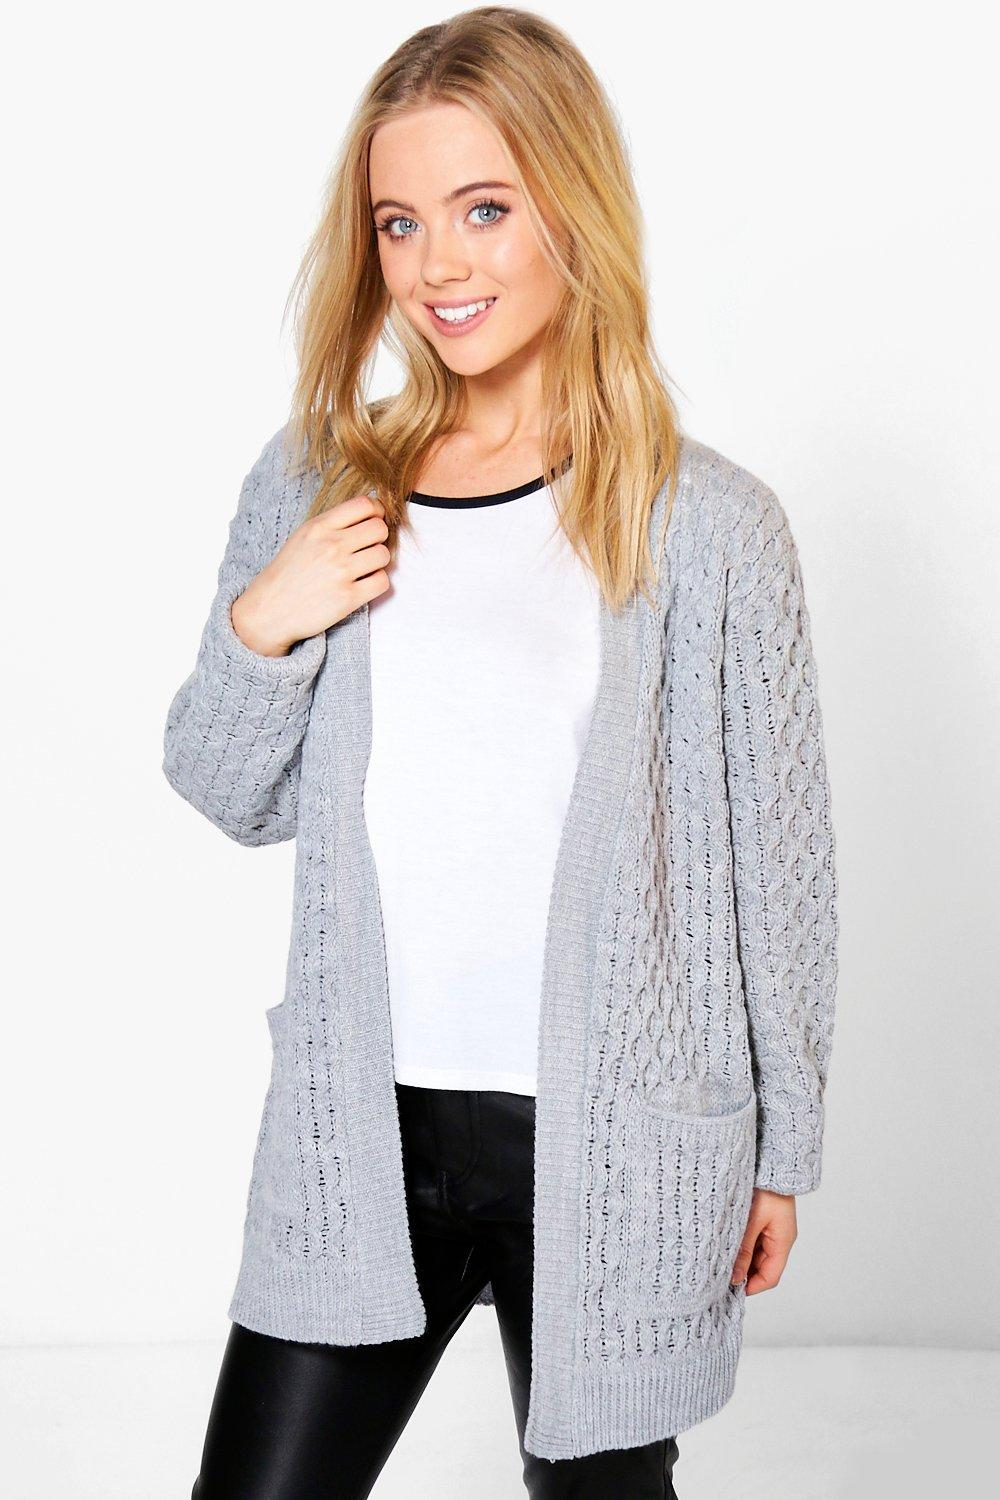 Petite Grace Elements Solid Classic Cardigan Purple Thistle. Complete your outfit with the Petite Grace Elements ribbed knit classic shopnow-vjpmehag.cf solid layer, with a button front closure, features 3/4 novelty button cuff sleeves and crew neck. 48% Rayon, 33% Acrylic, 17% Nylon, 2% Spandex.